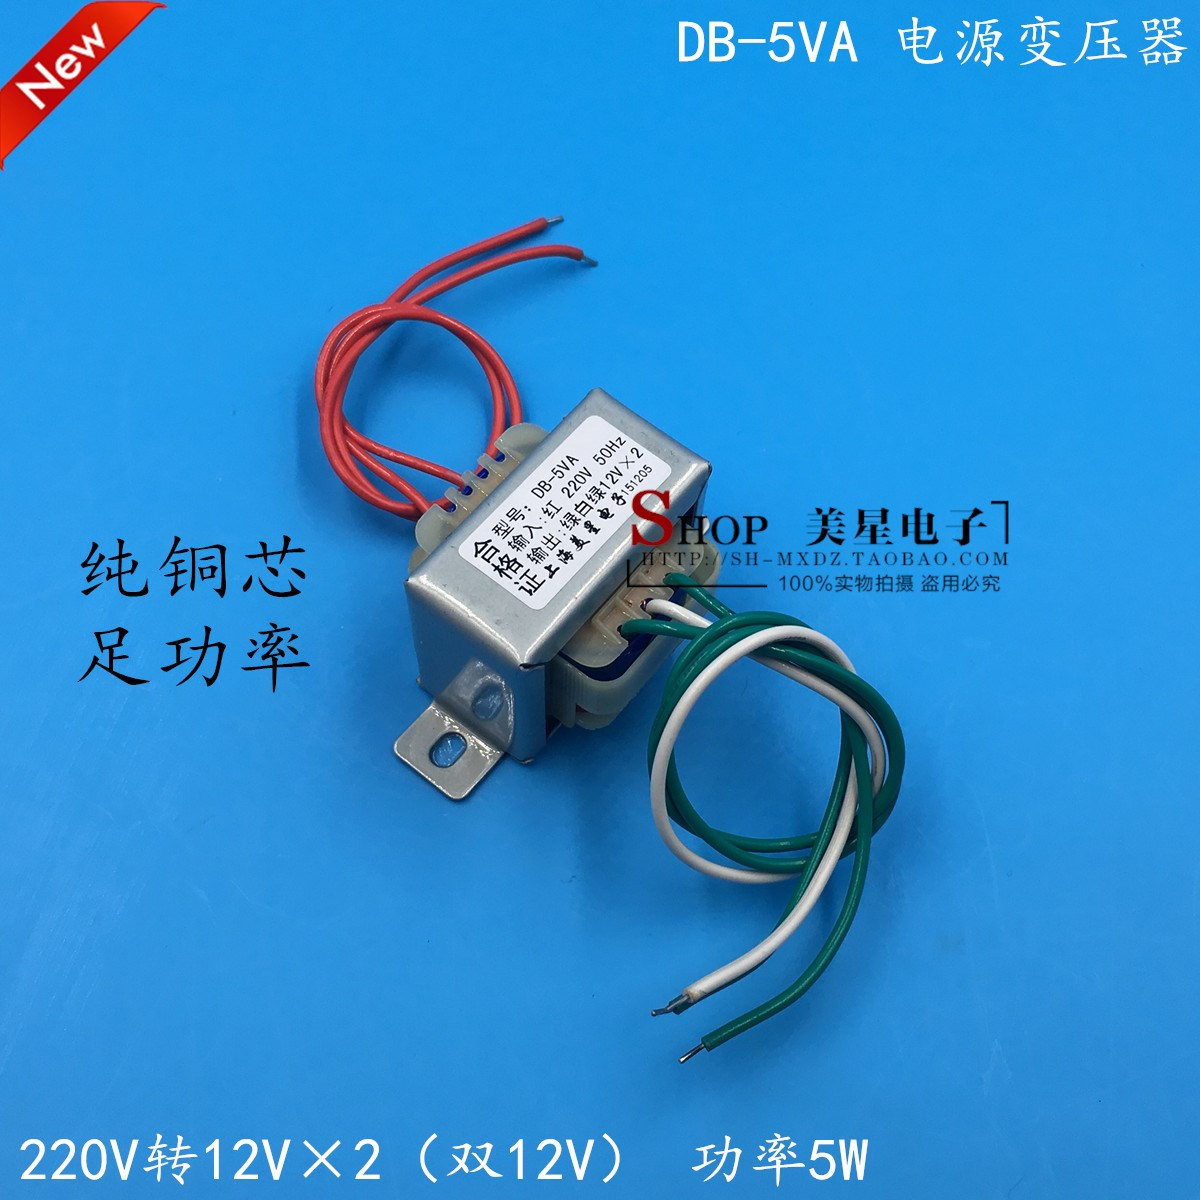 EI41205W power transformer DB-5VA220V to 12V x 2 double 12V12V-0-12V0.2A